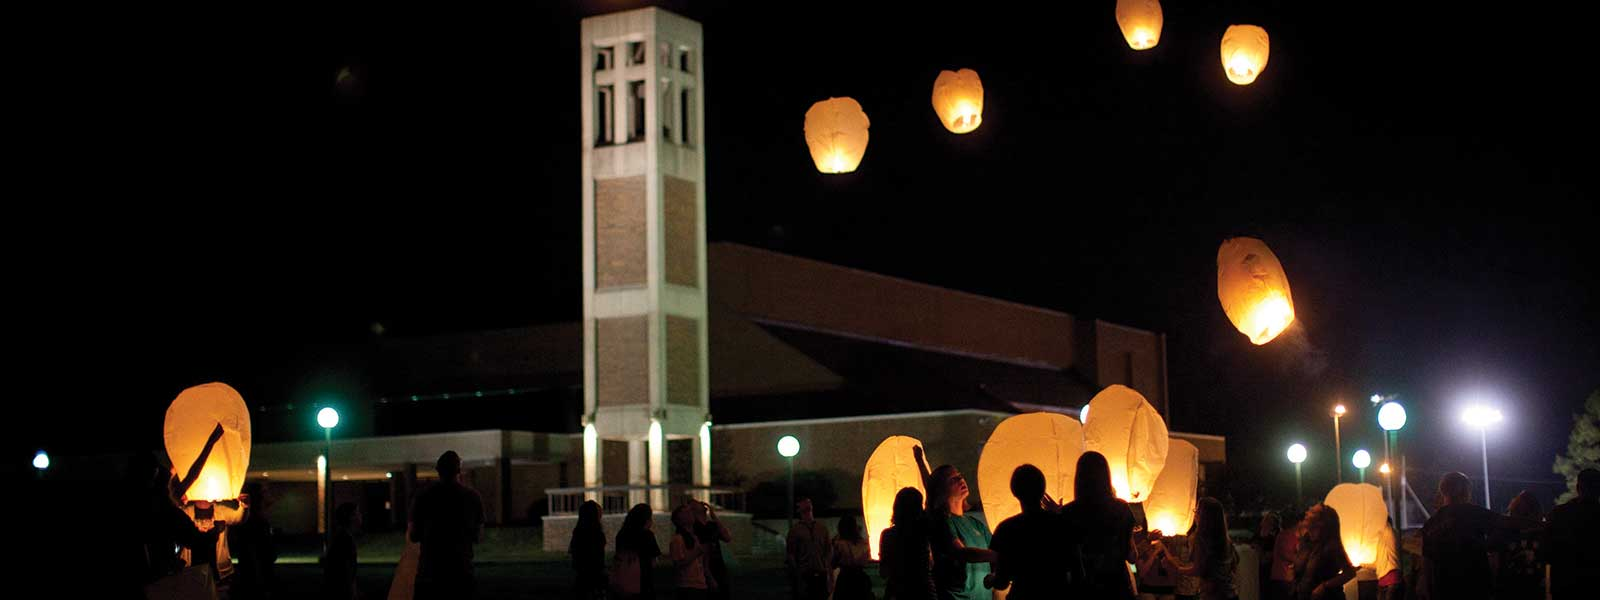 students release lanterns into night sky in front of bell tower